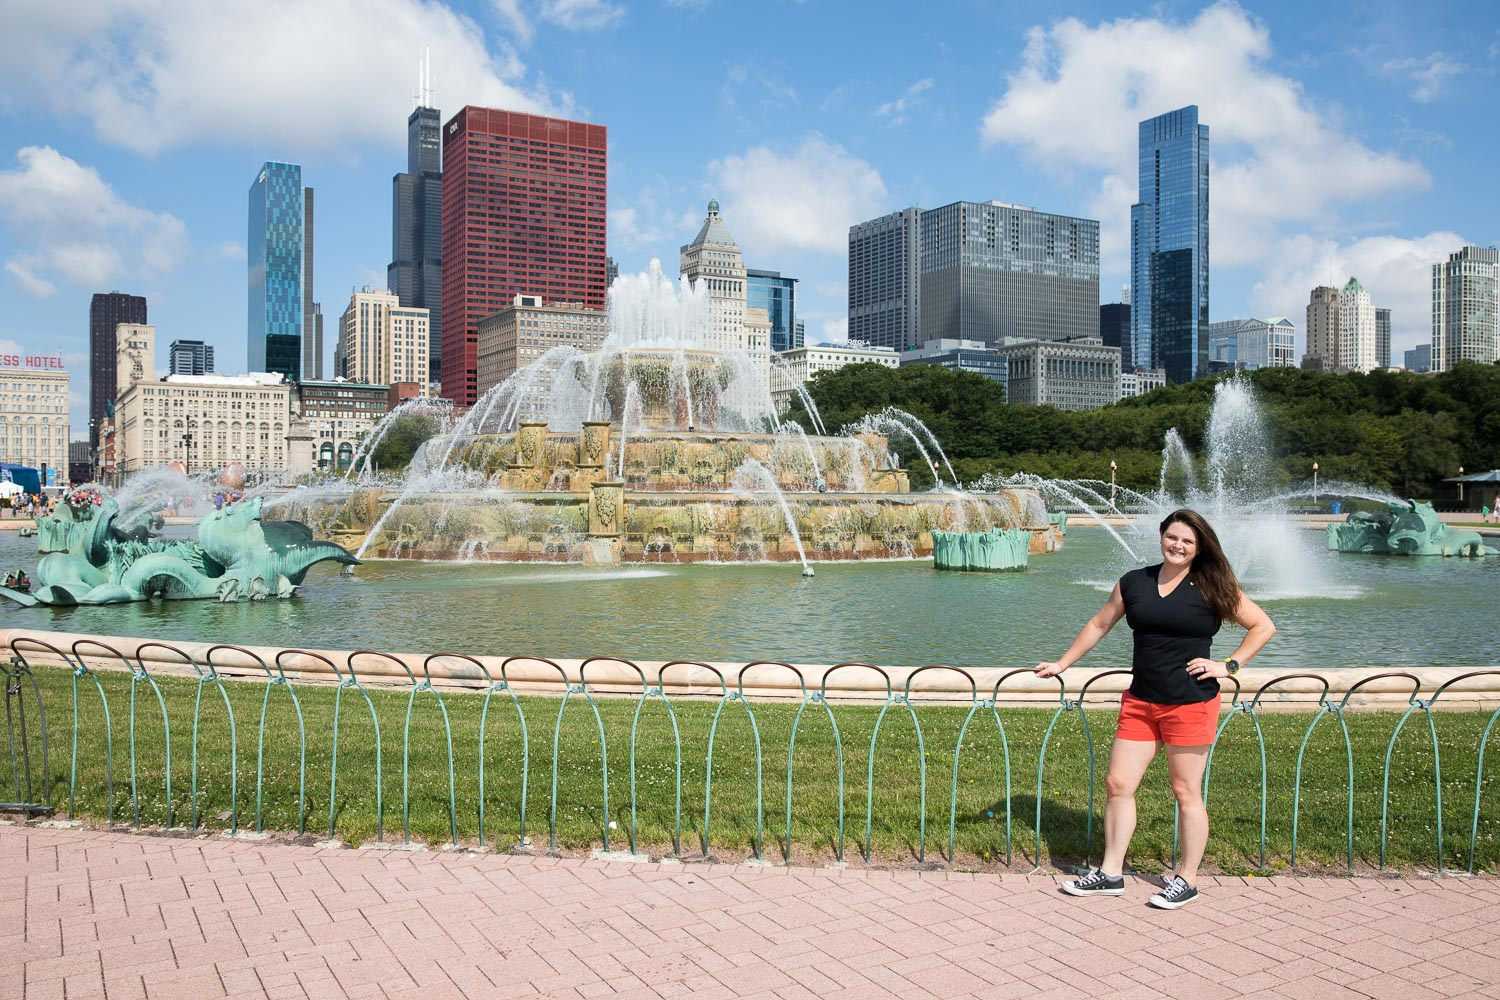 """Buckingham Fountain in Chicago. """"Liz, do you have your camera on some crazy non-automatic setting again?"""" """"Yes, but it should be fine, just press the button."""" """"Which button?"""" """"That big one."""" """"This one?"""" """"No, the other one."""" """"Okay."""" ::snap:: """"How does it look?"""" """"You didn't focus it!"""" """"Well, Liz..."""" ...10 minutes later we got this shot..."""